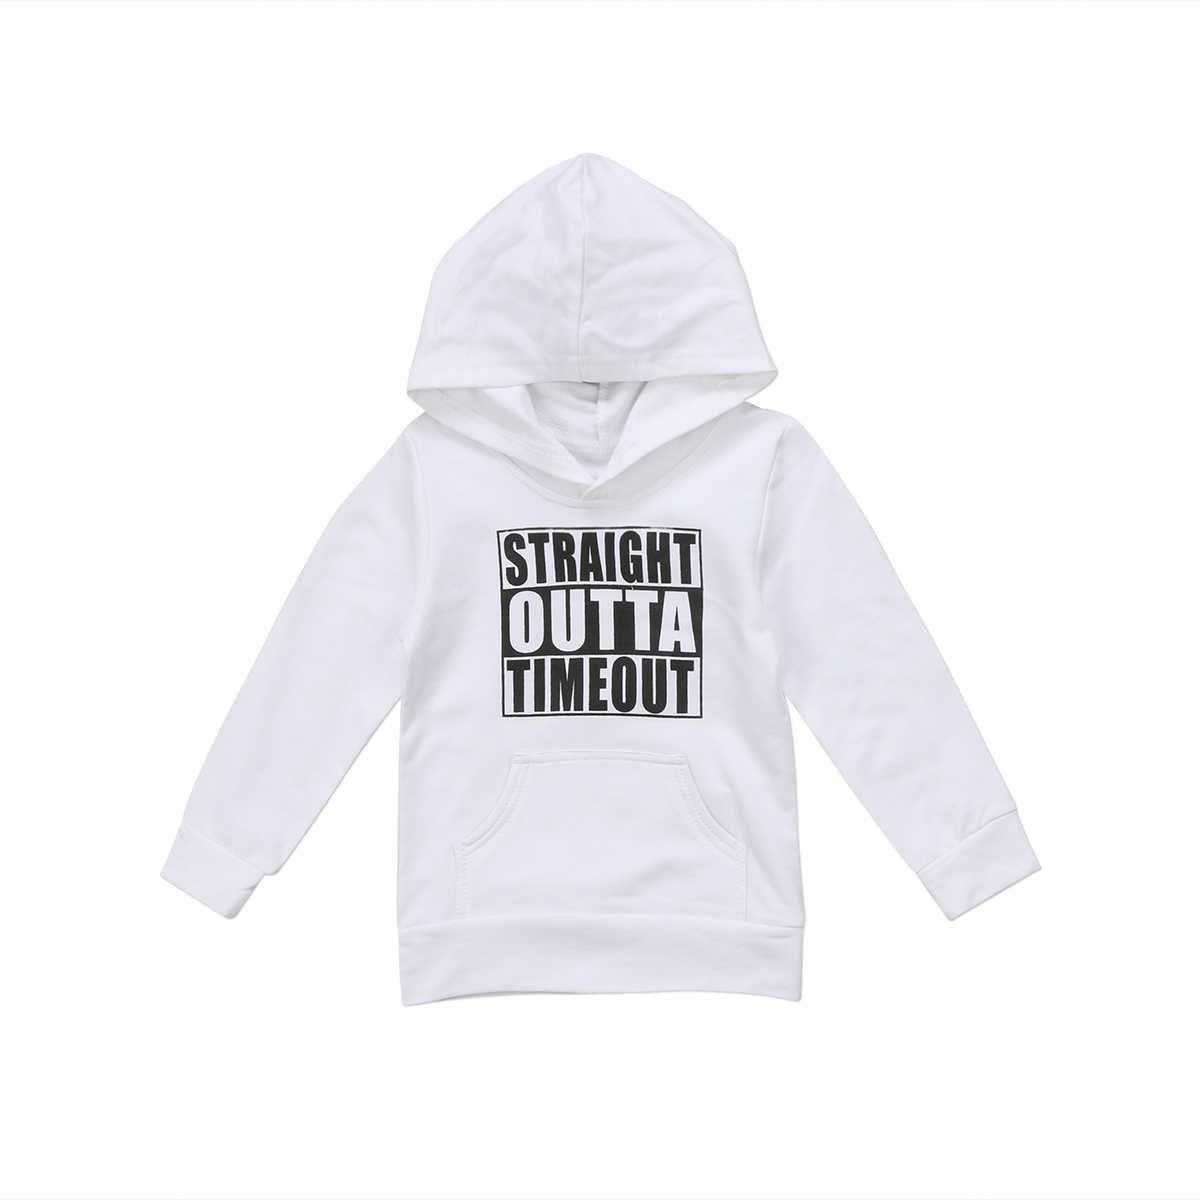 Fashion Toddler Kids Baby Boy Girl Hoodie 2017 New Long Sleeve Pullover Coat Tops Hooded Sweatshirt Outdoor 0-5T